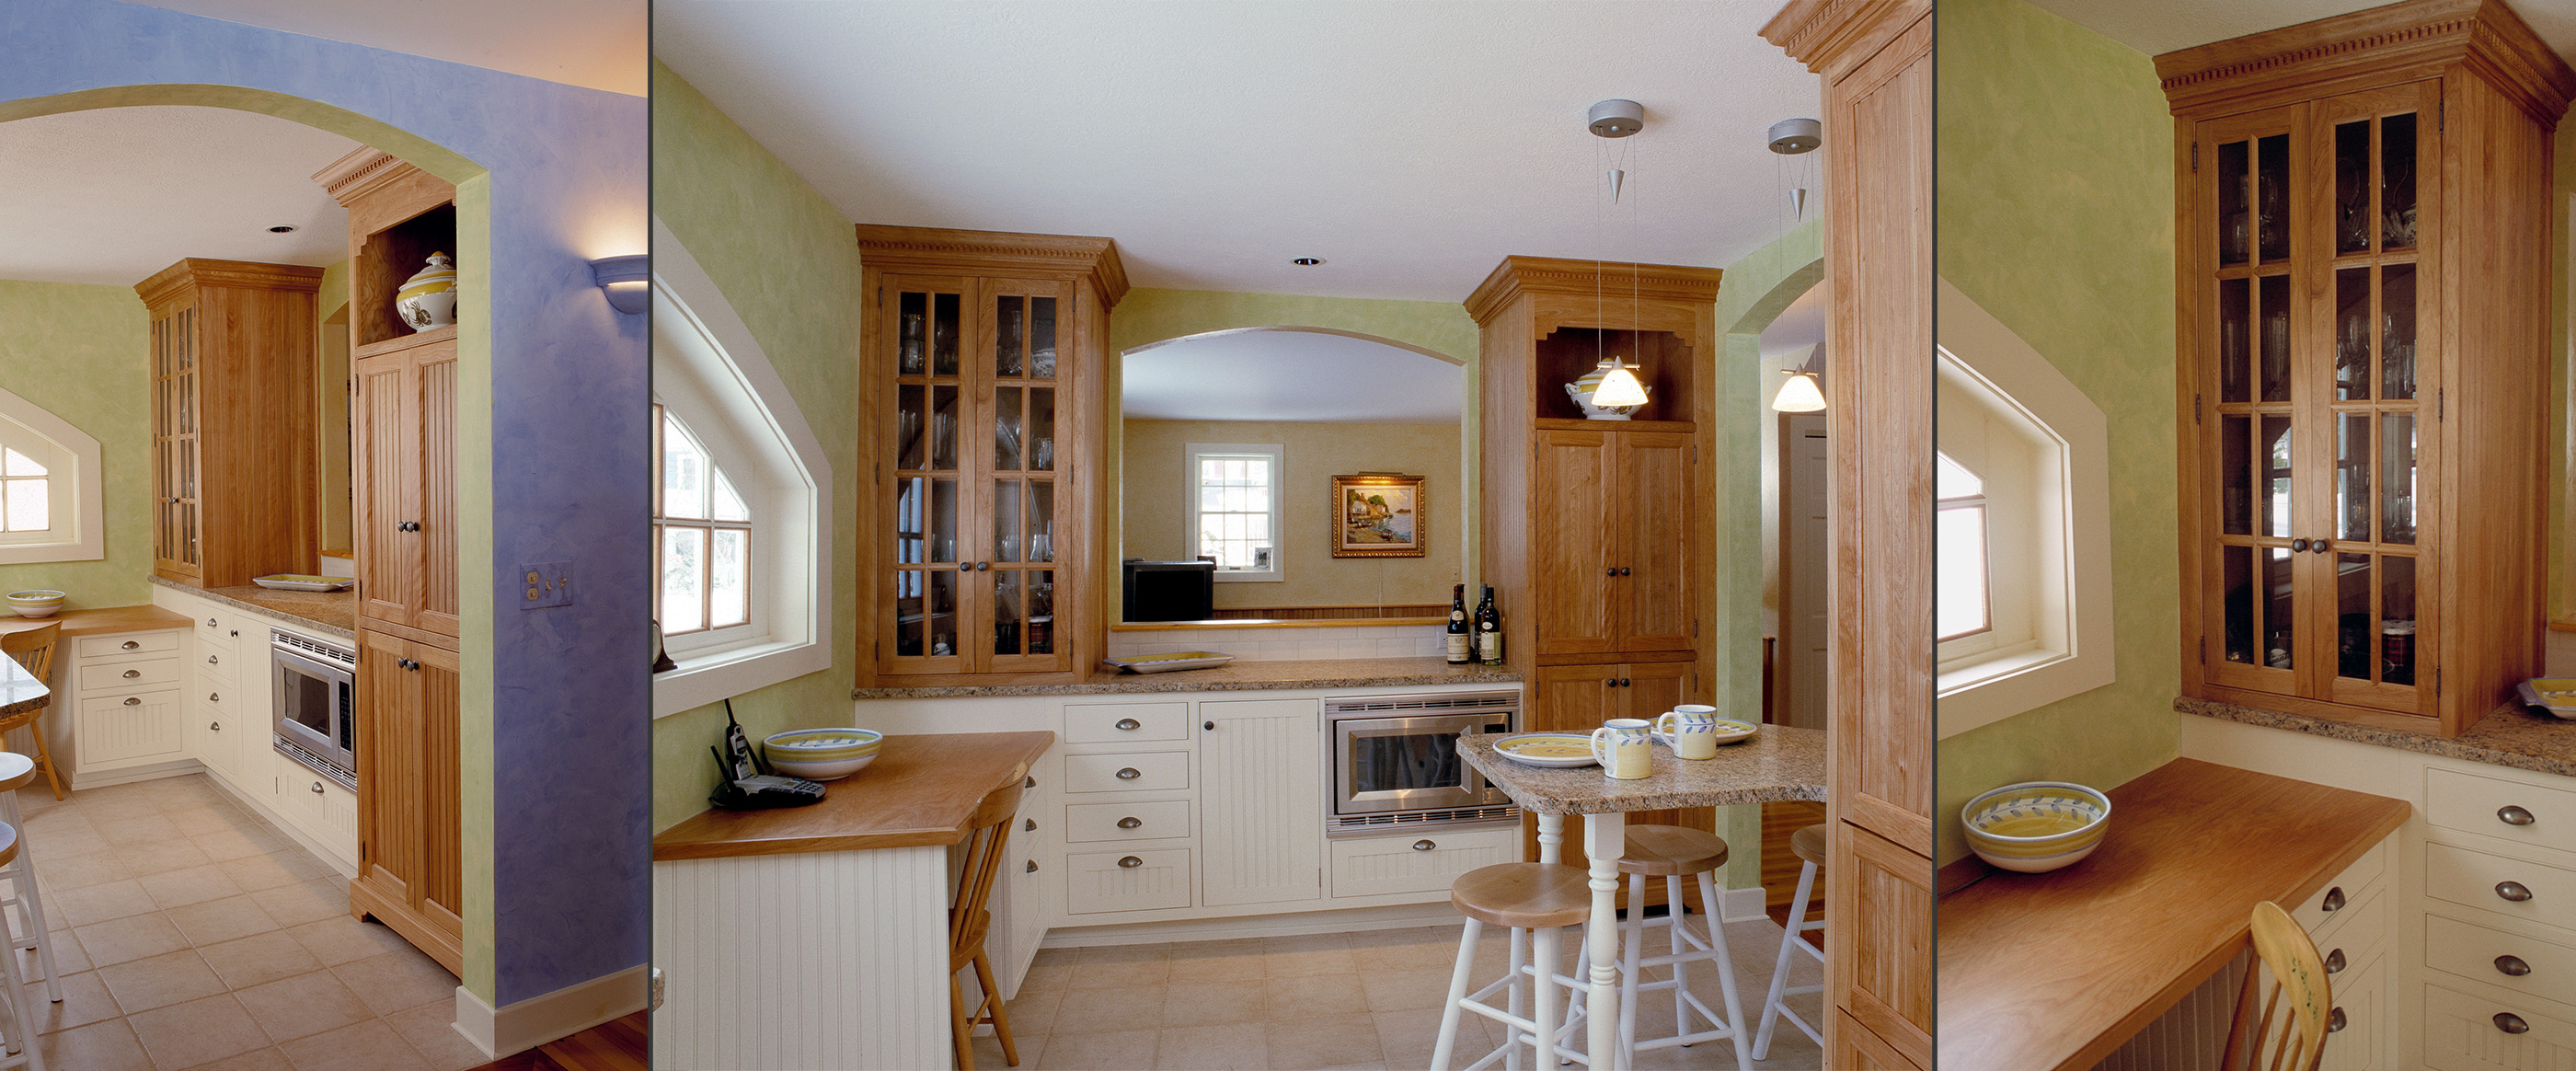 somma-kennenbunk-kitchen-21